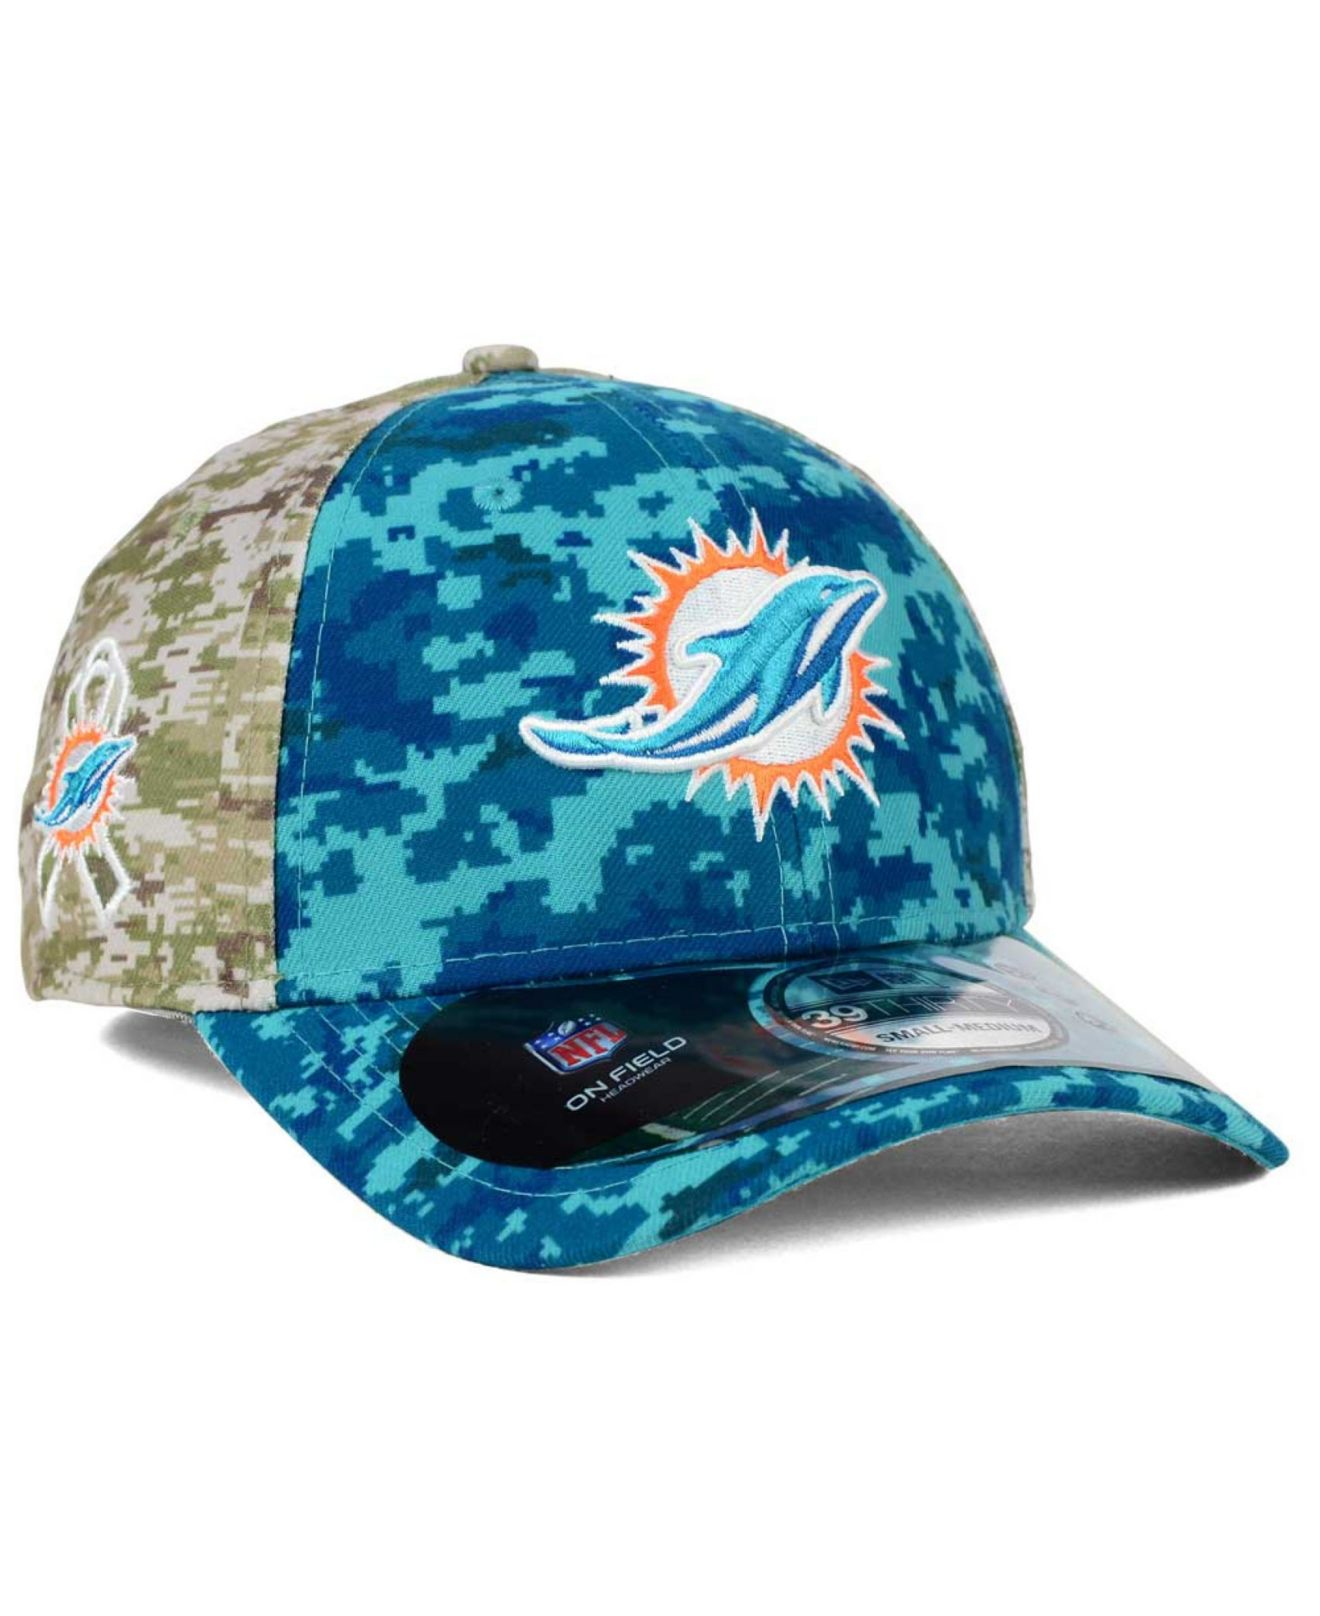 ... discount lyst ktz miami dolphins salute to service 39thirty cap in blue  for men dfb6c 5a4ef ... 250cfc2d2fc0